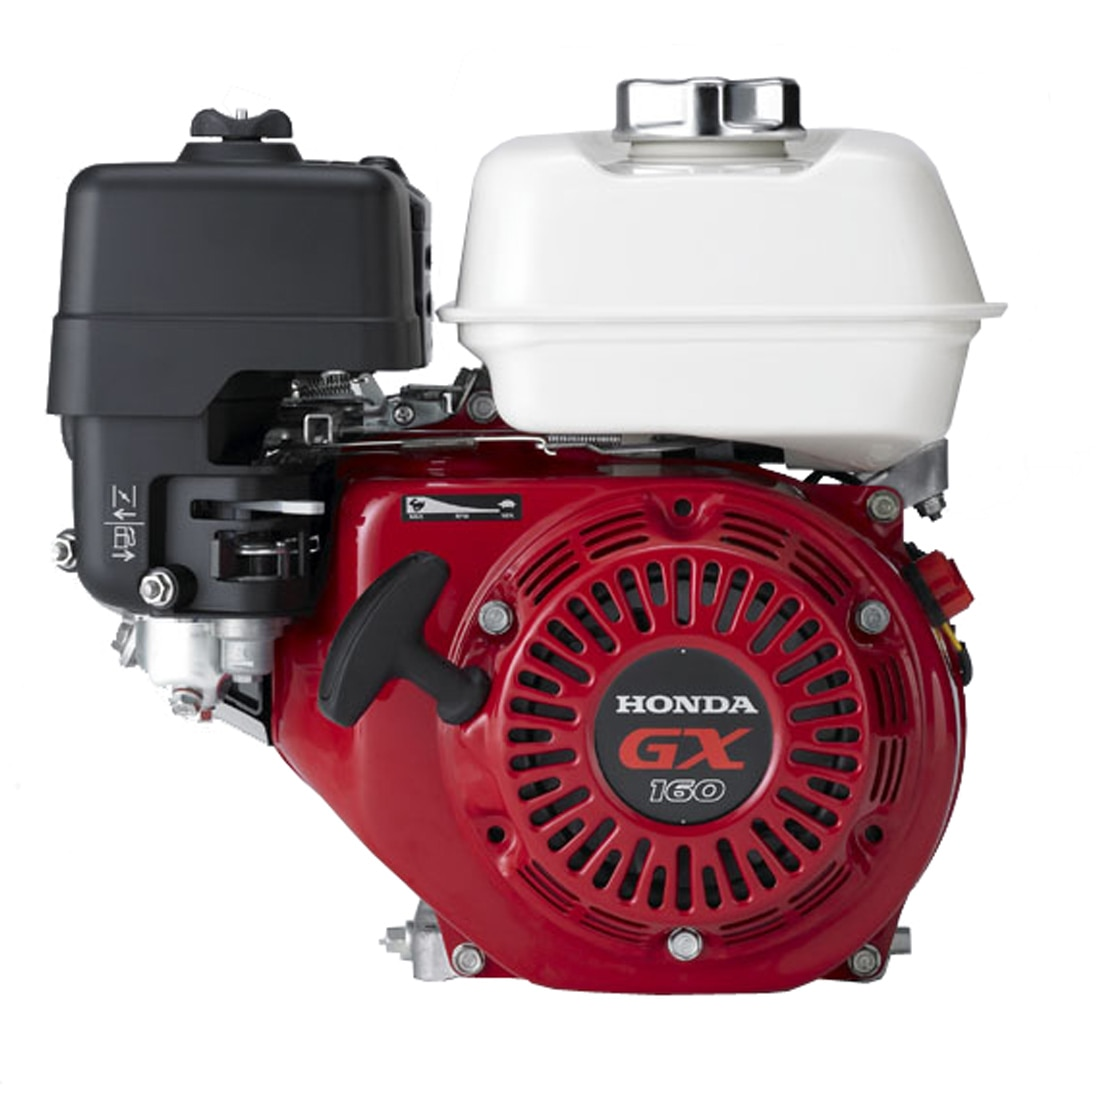 Honda Engines | Small Engine Models, Manuals, Parts ... on